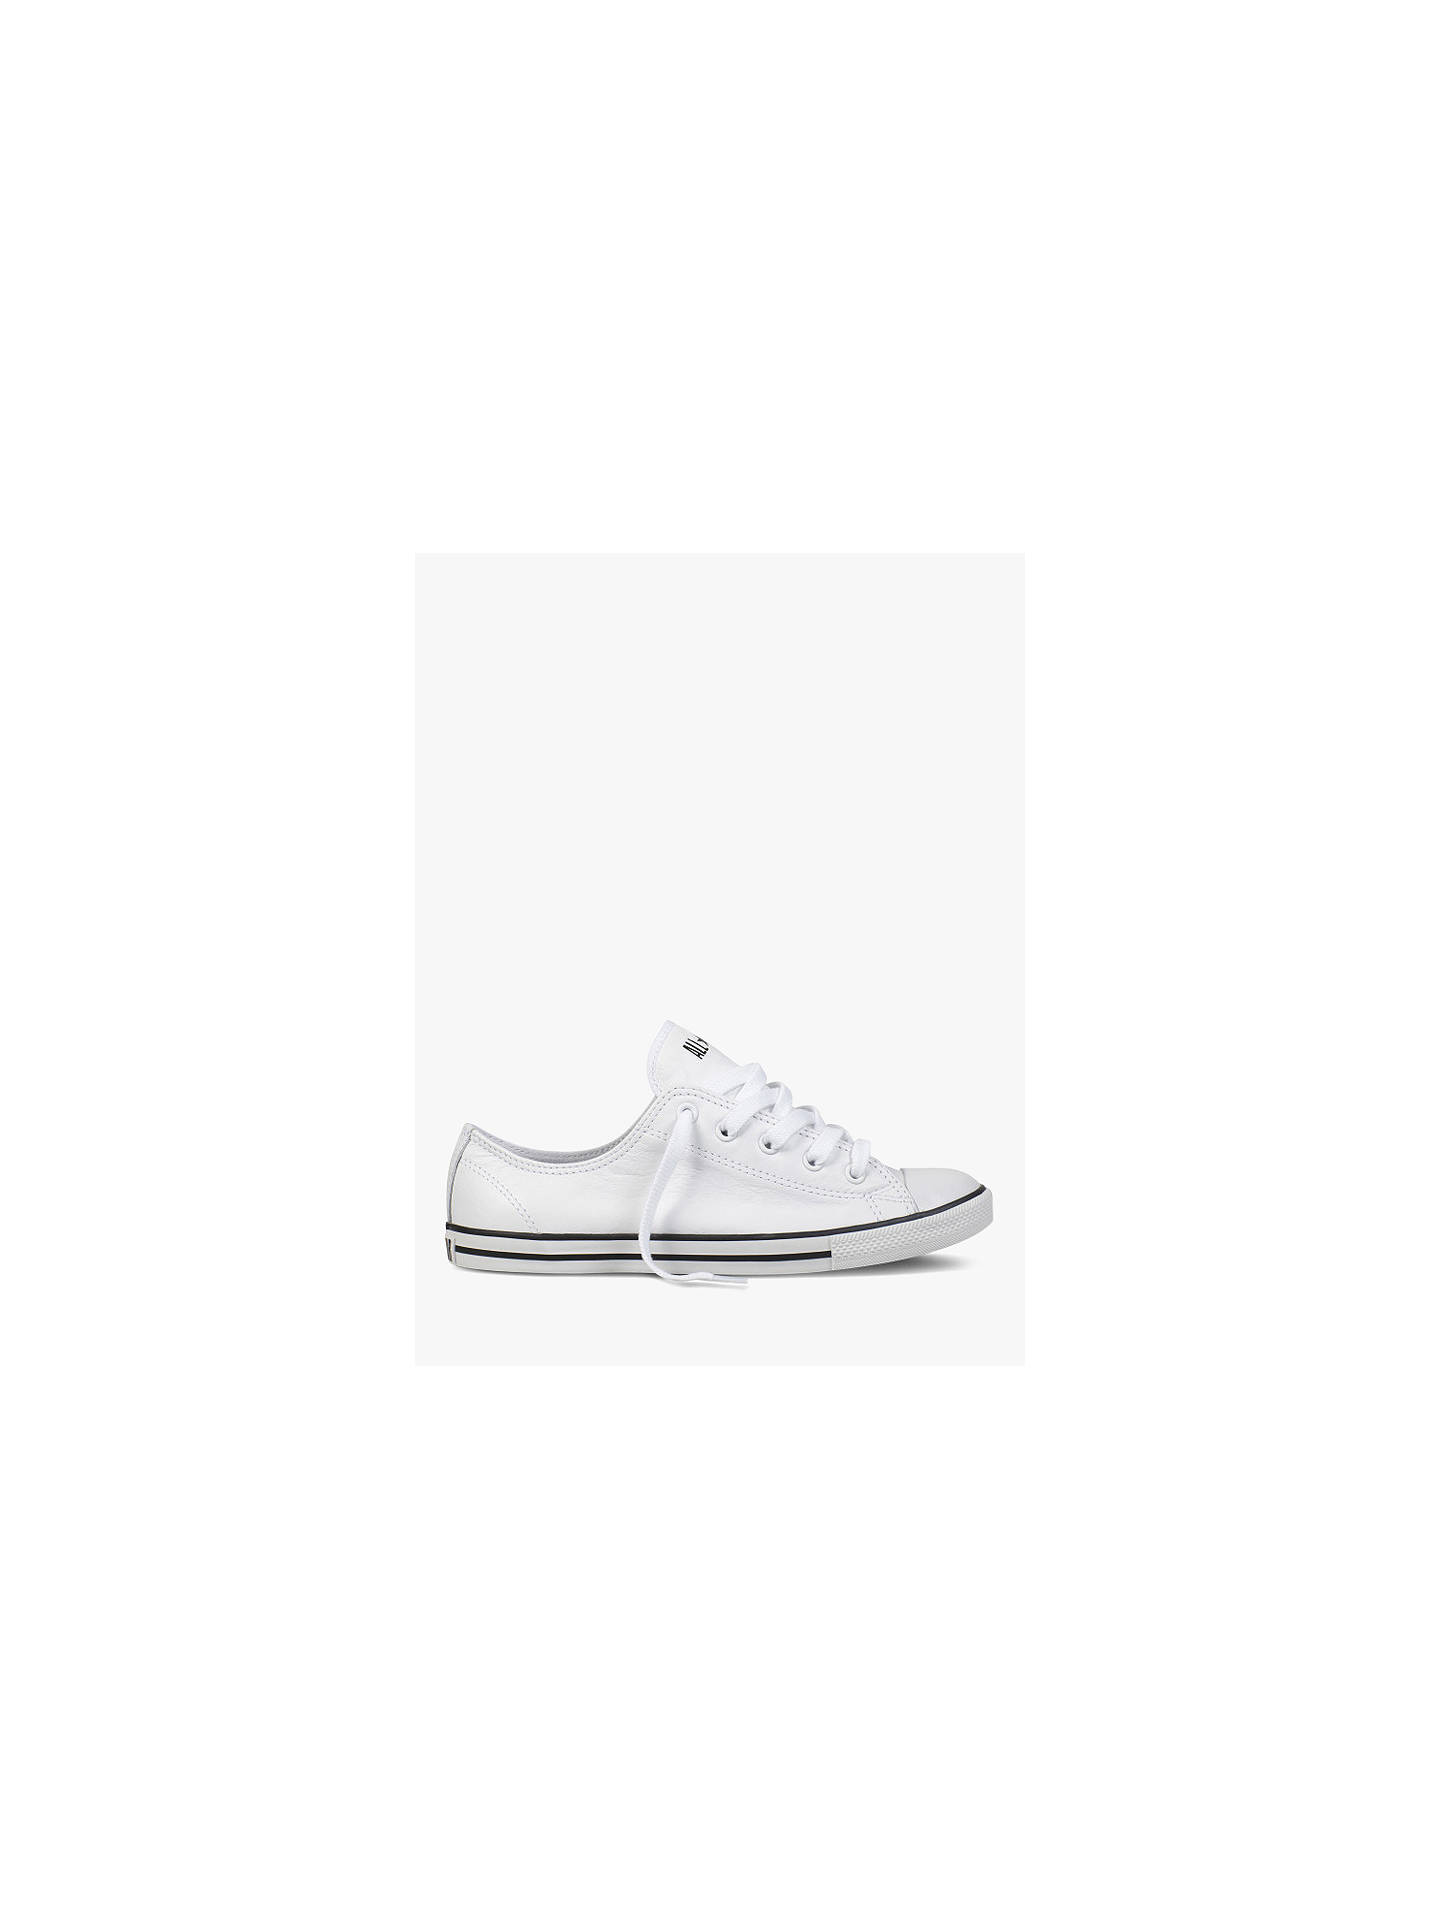 28c87aebf5ec55 Converse Chuck Taylor All Star Women s Dainty Leather Trainers ...